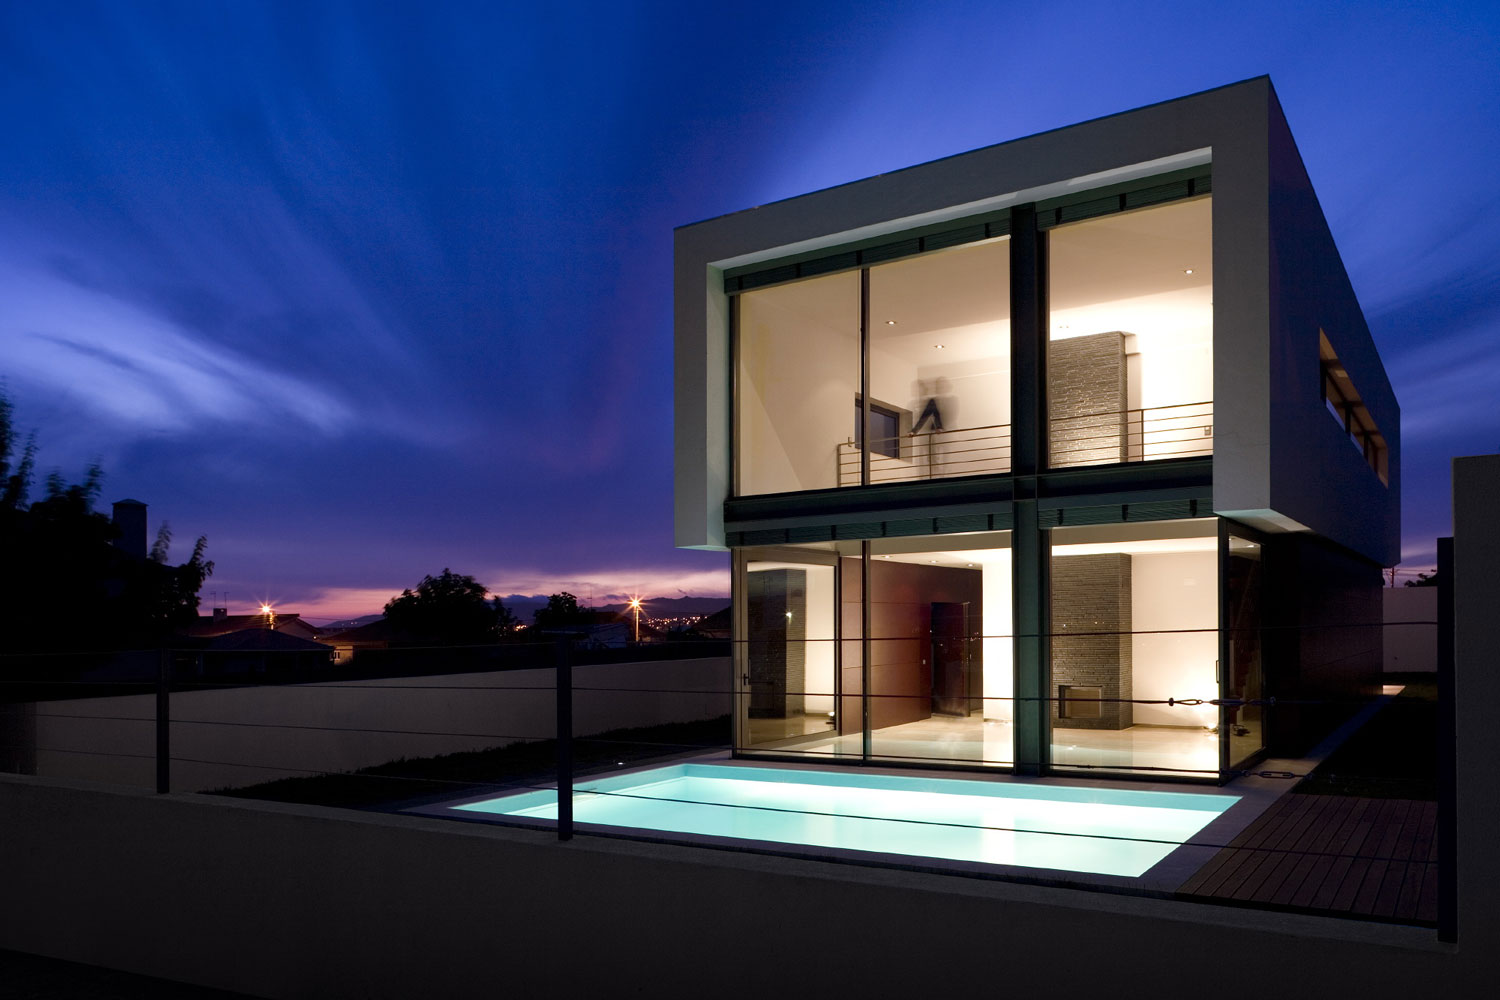 DT House by Jorge Graca Costa